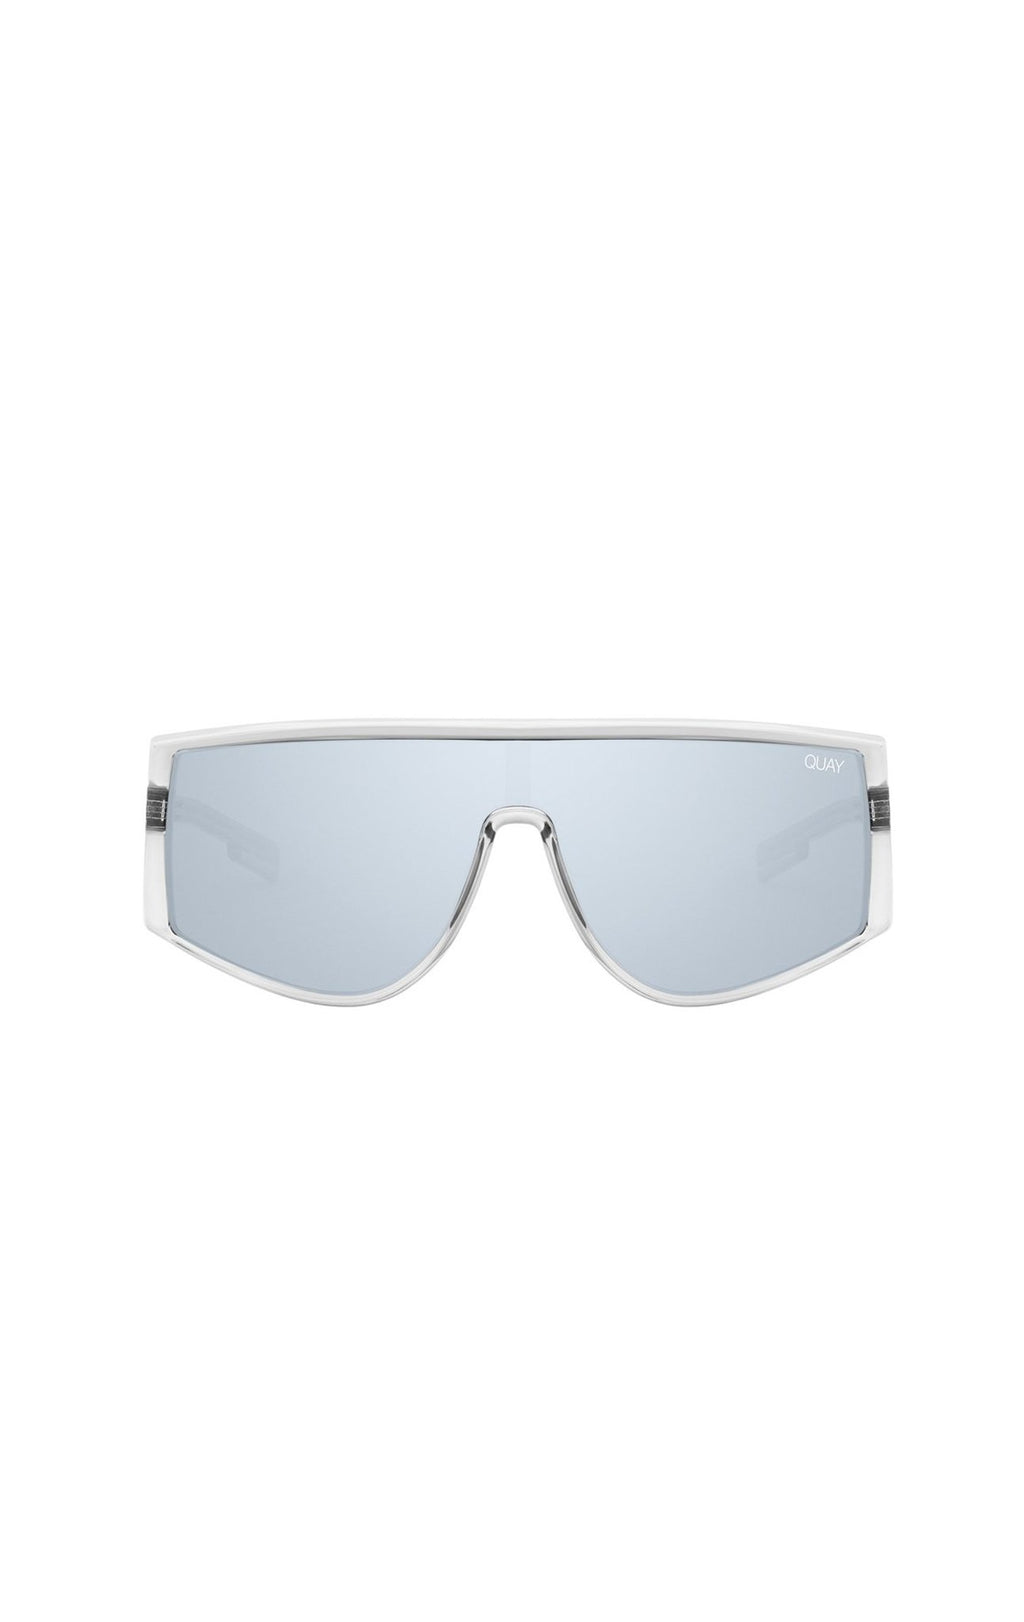 QUAY COSMIC OVERSIZED SUNGLASSES FRONT